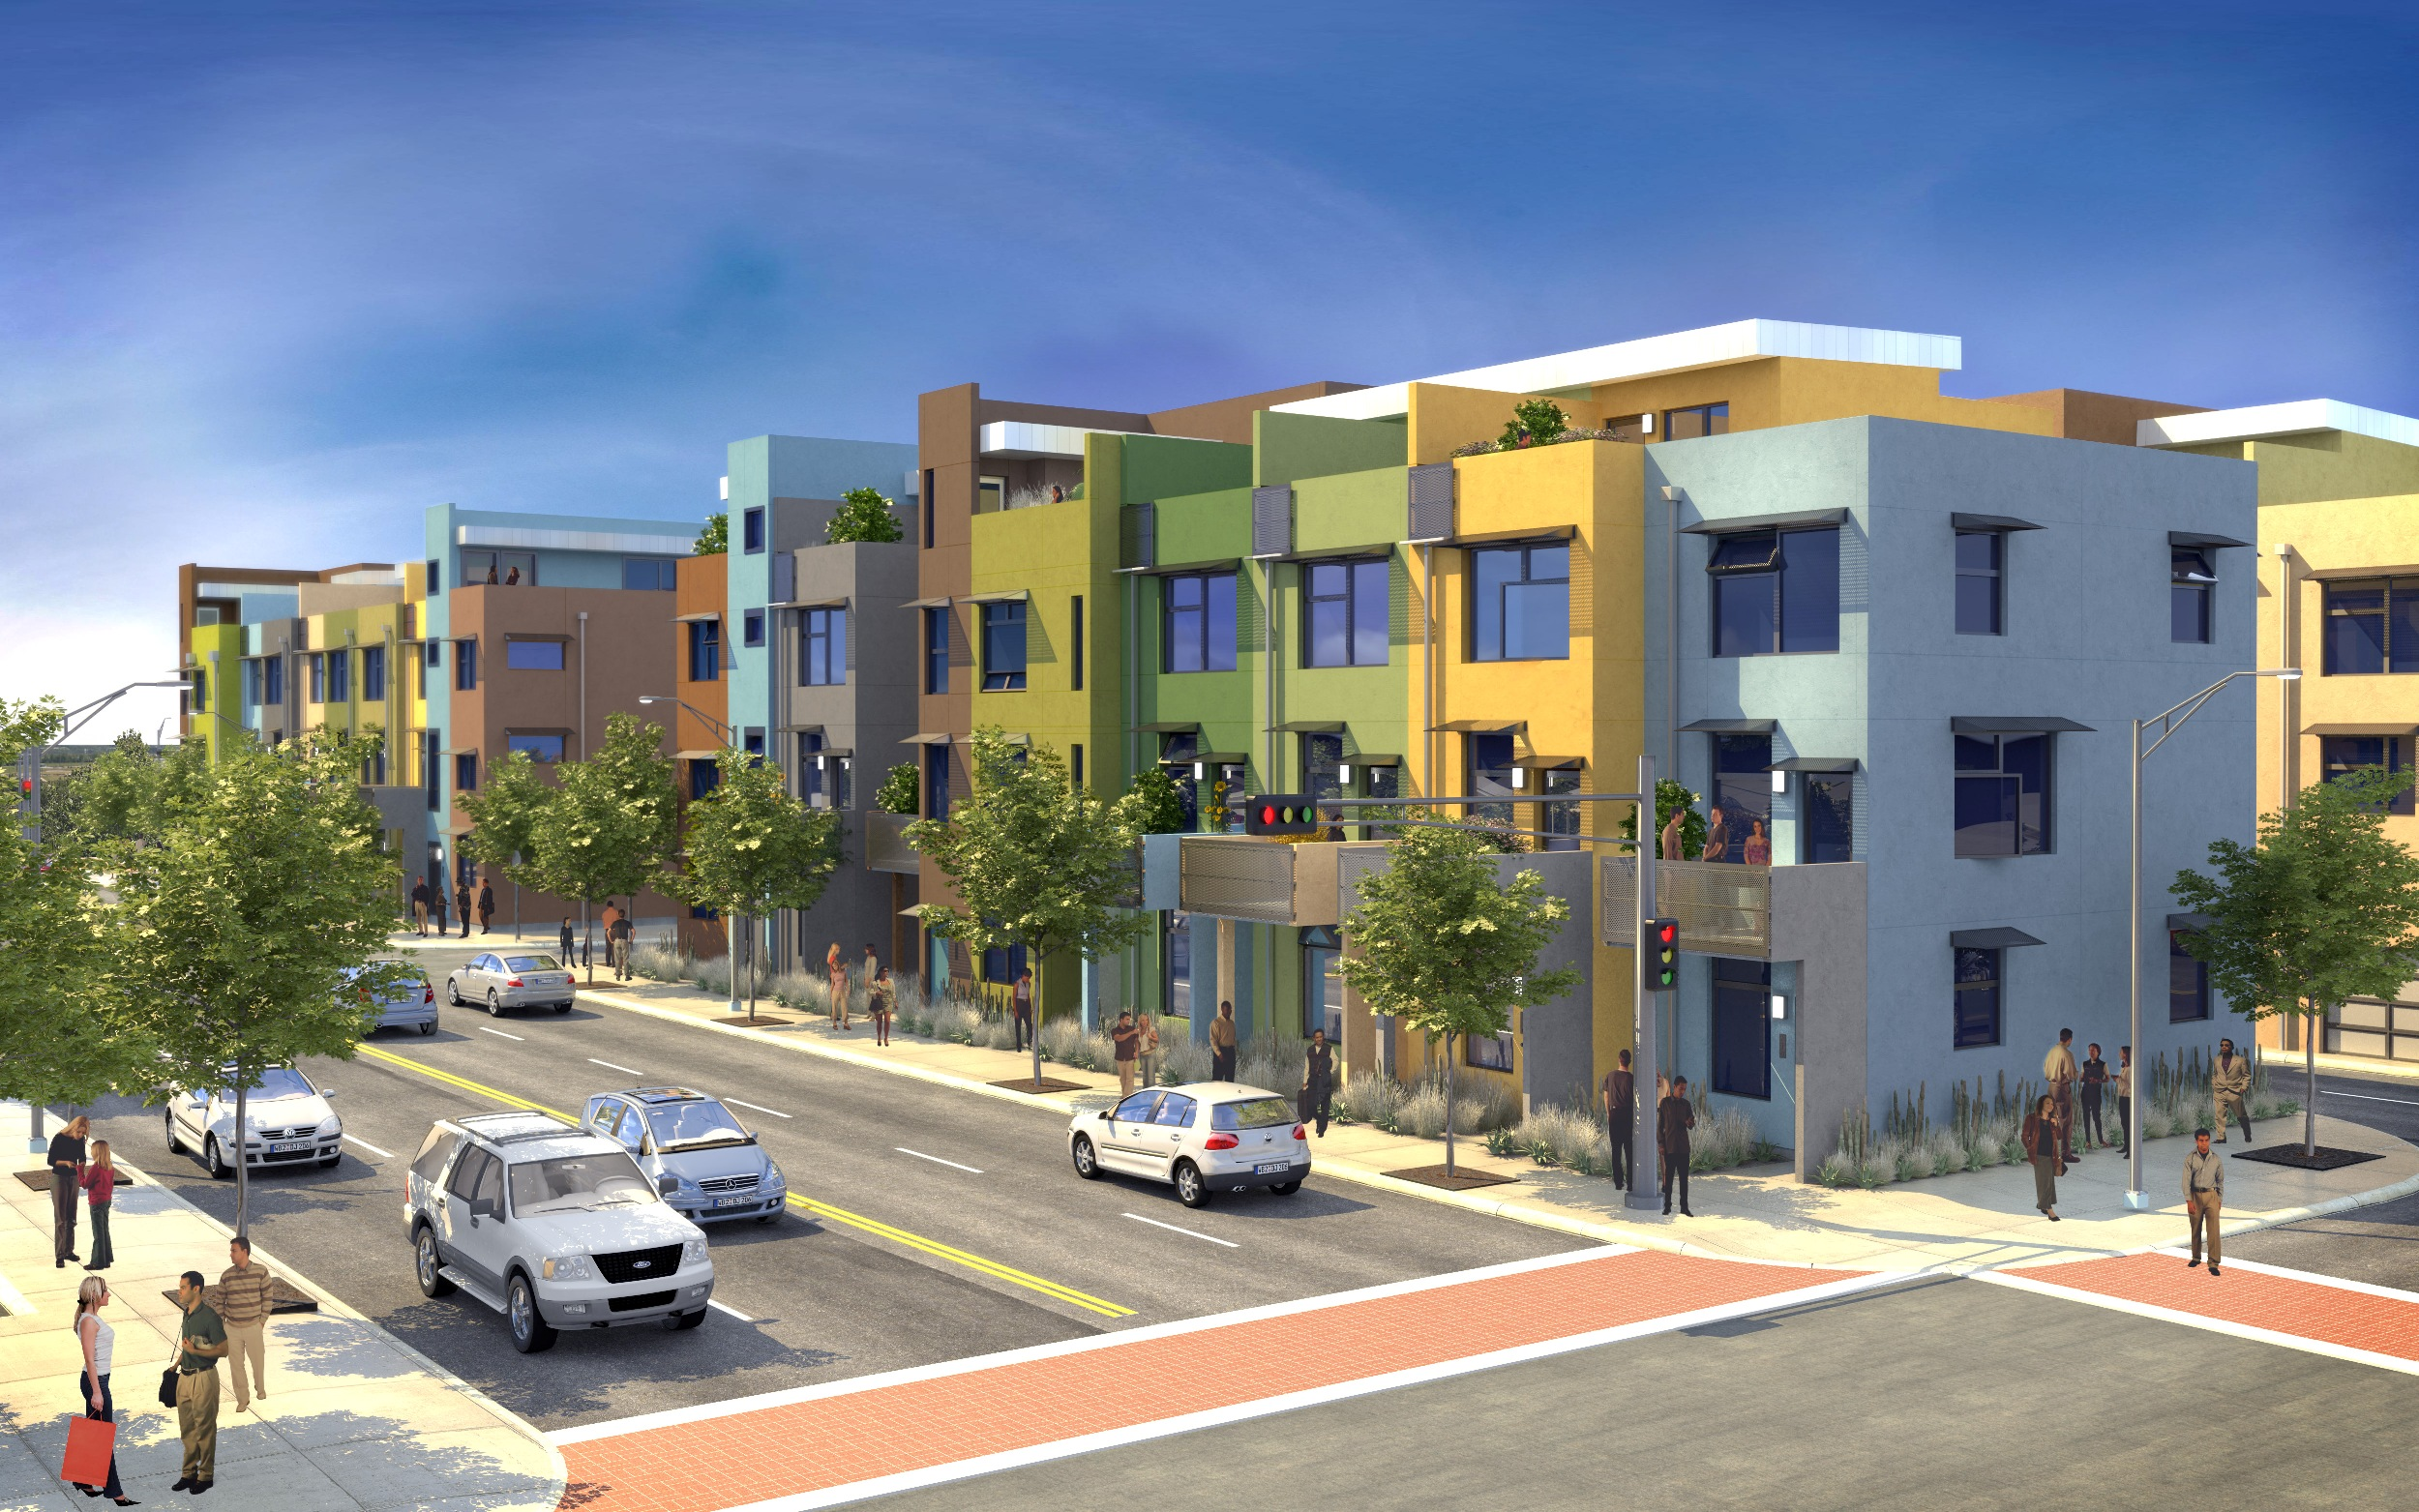 Elements Urban Townhomes72 Green Urban Town Homes Being Built In Downtown  Albuquerque. Each Home Is Built And Designed To Achieve LEED Gold And  Operates 40% ...